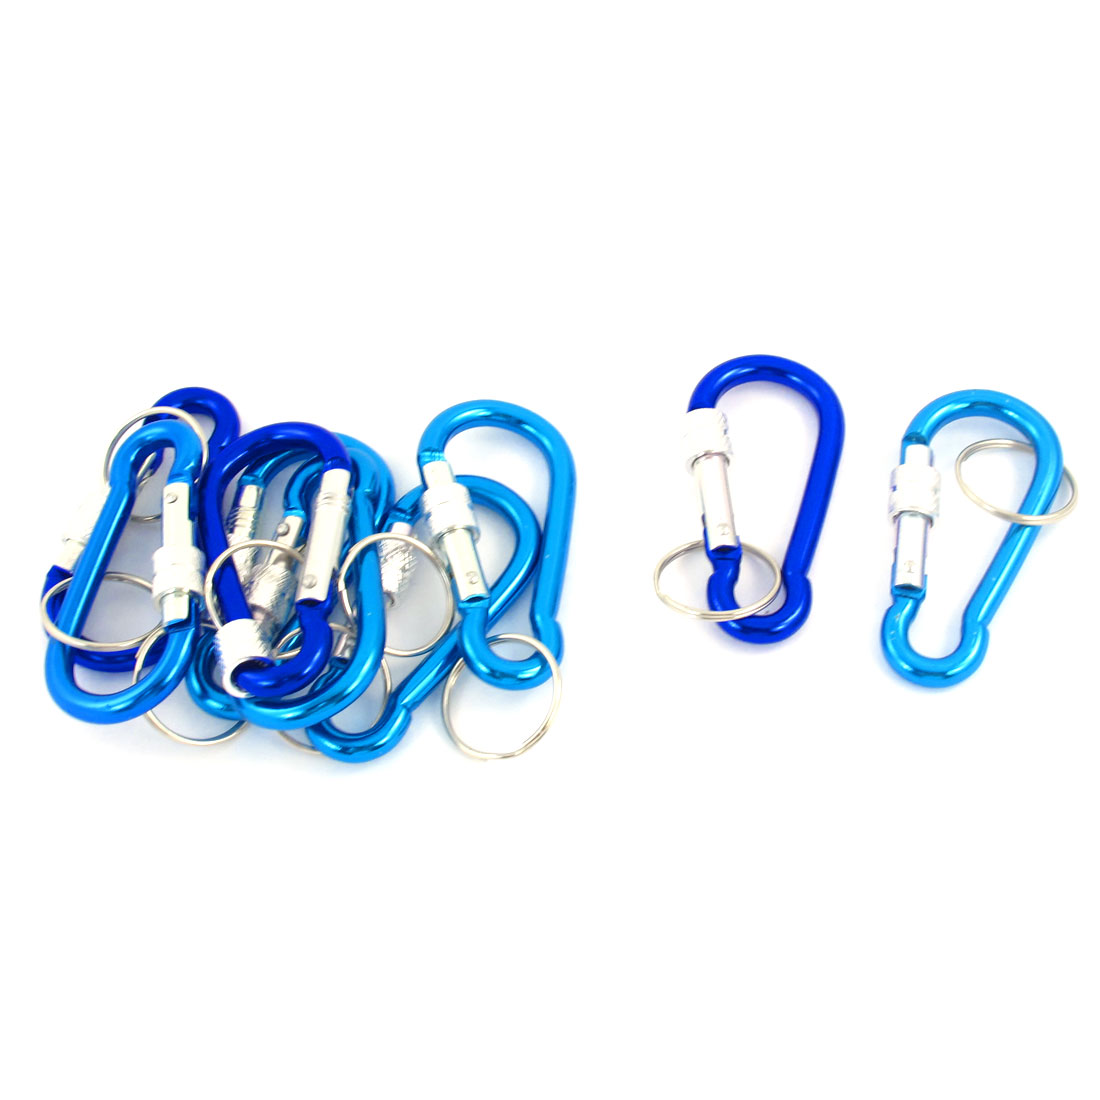 9 Pcs Travel Hiking D Shaped Aluminum Alloy Carabiner Hook Two Tone Blue